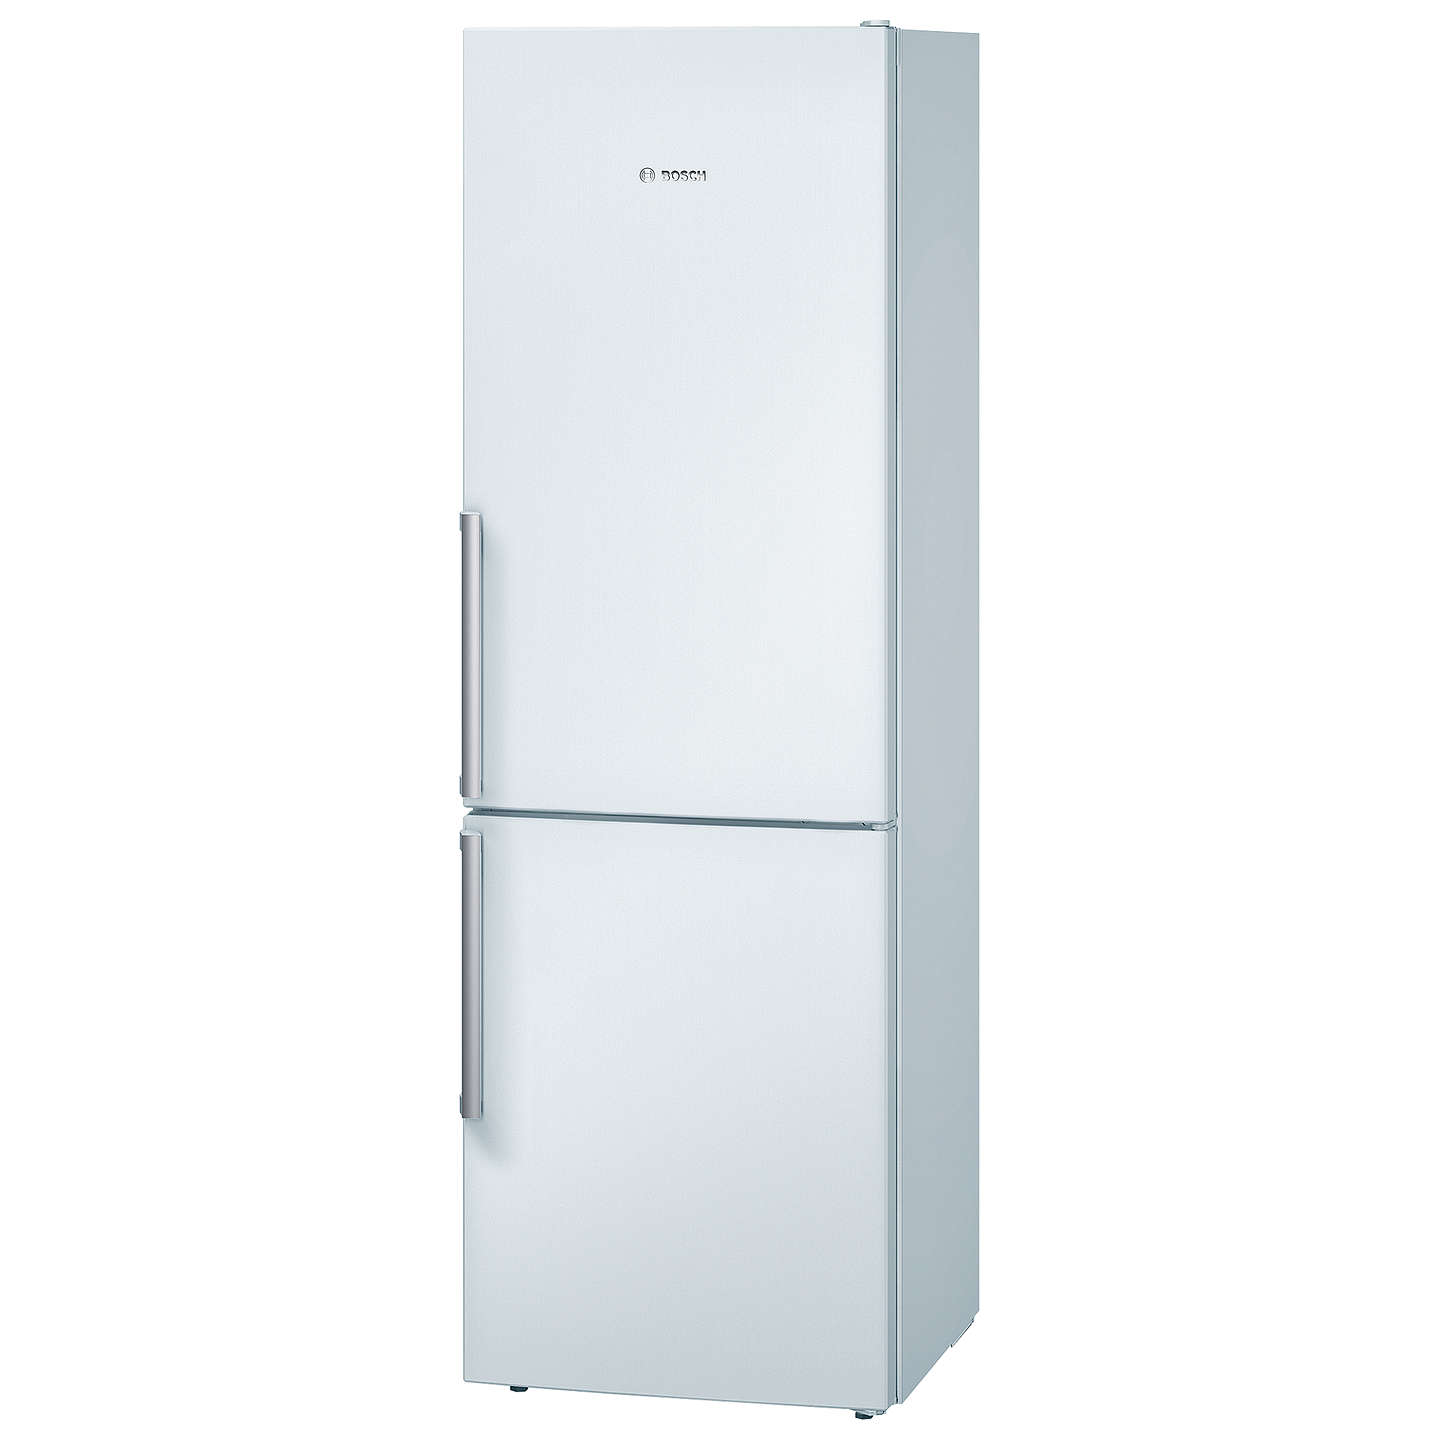 BuyBosch KGE36AW40G Fridge Freezer, A+++ Energy Rating, 60cm Wide, White Online at johnlewis.com